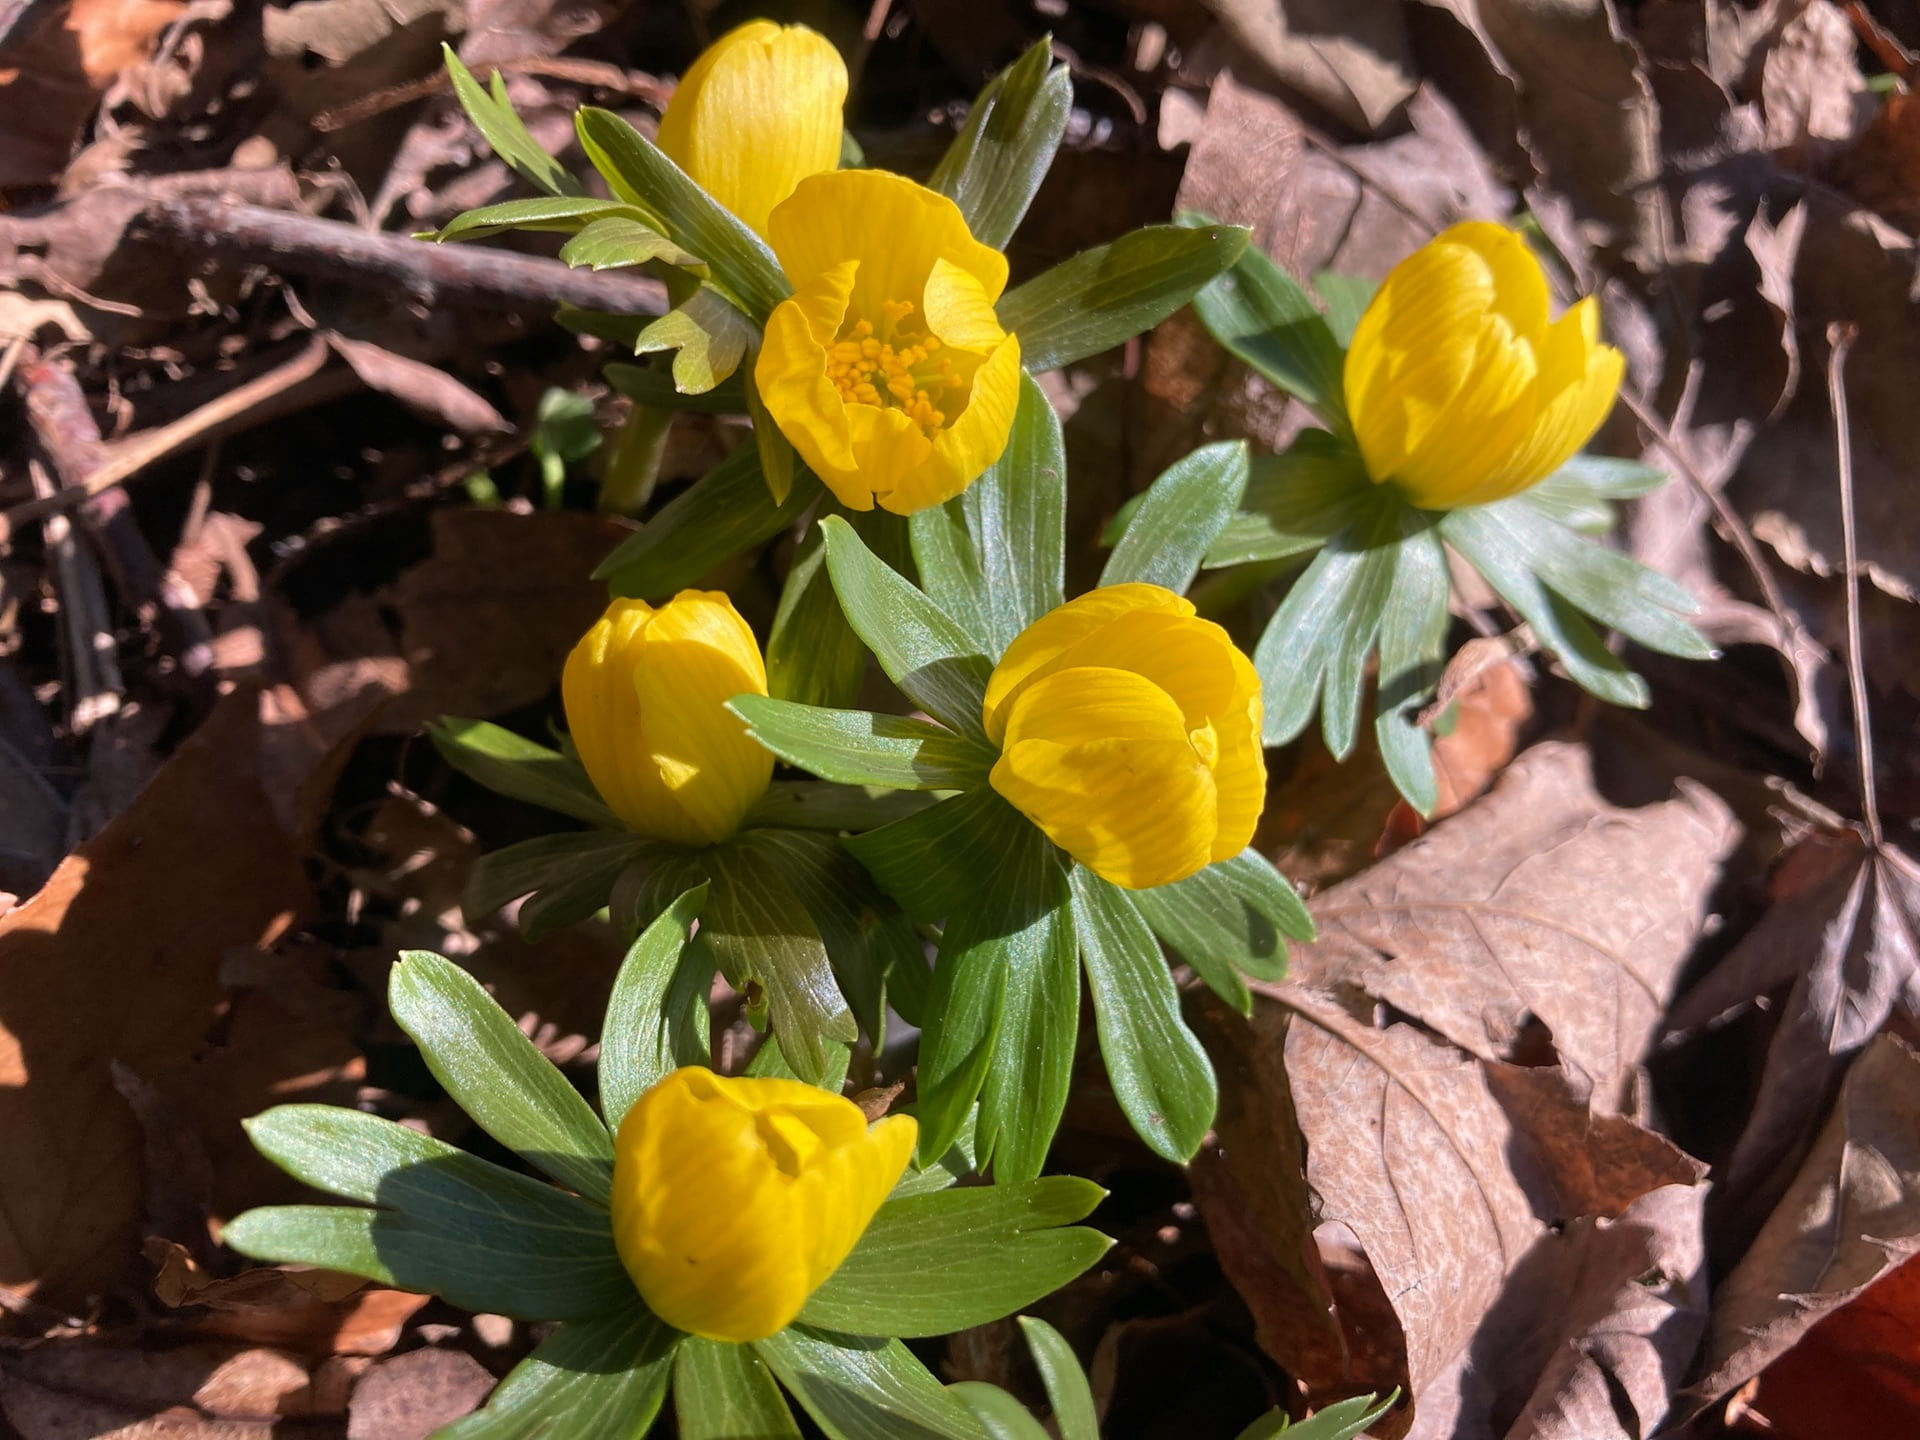 Eranthis hyemalis making an appearance after the snow melted away.